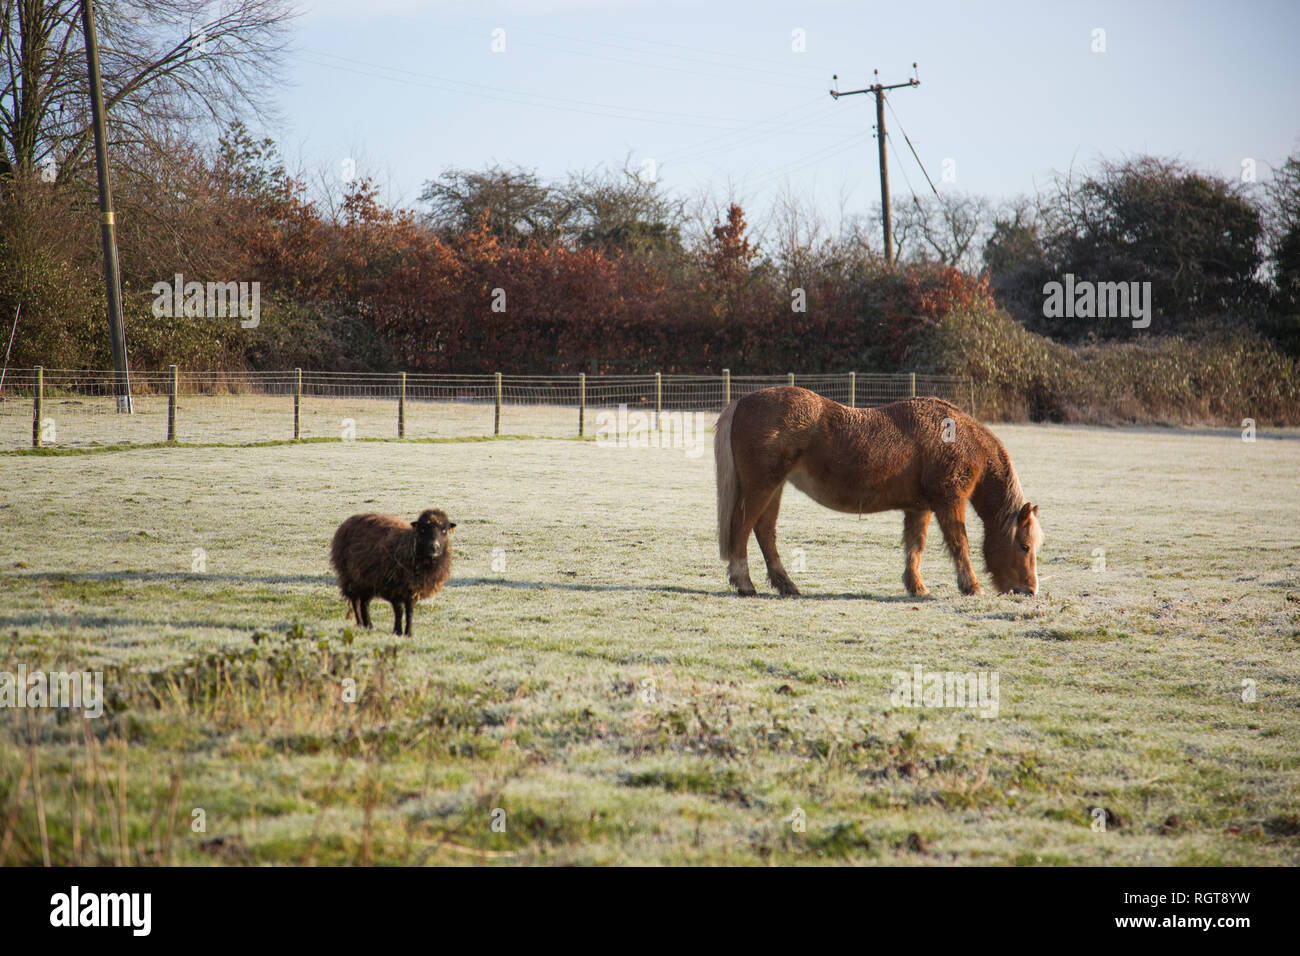 Horse and sheep standing in a frosty field on a sunny winter's day in a rural location in Bromsgrove, Worcestershire - Stock Image